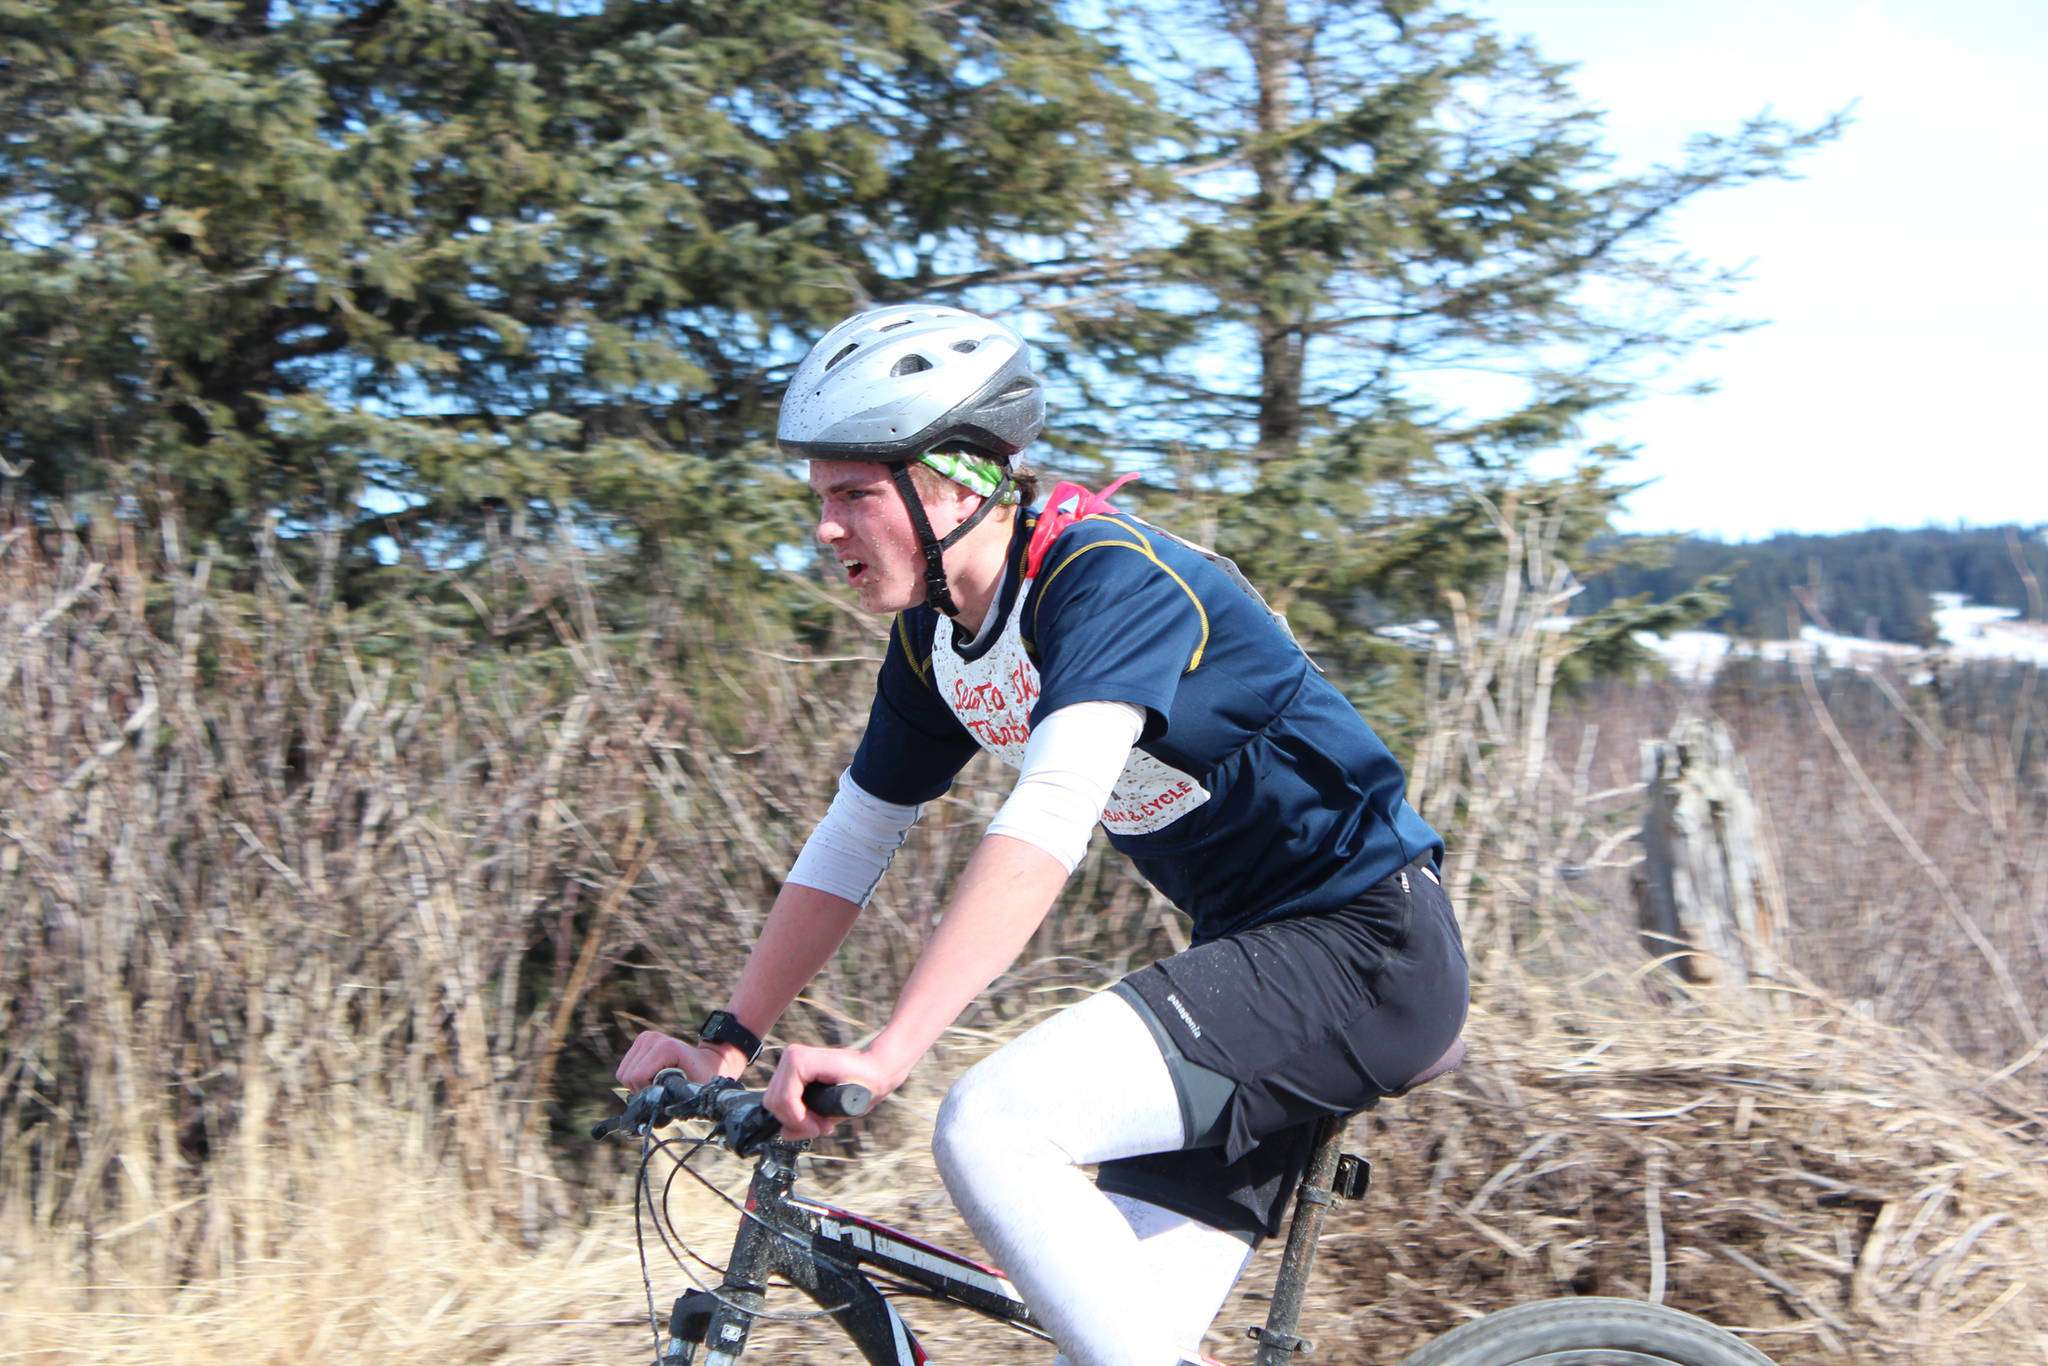 Homer High School senior Denver Waclawski bikes into the second transition station of this year's Sea to Ski Triathlon. He finished first in all three legs of the race and took first place overall Sunday, March 25, 2017 in Homer, Alaska. (Homer News file photo)